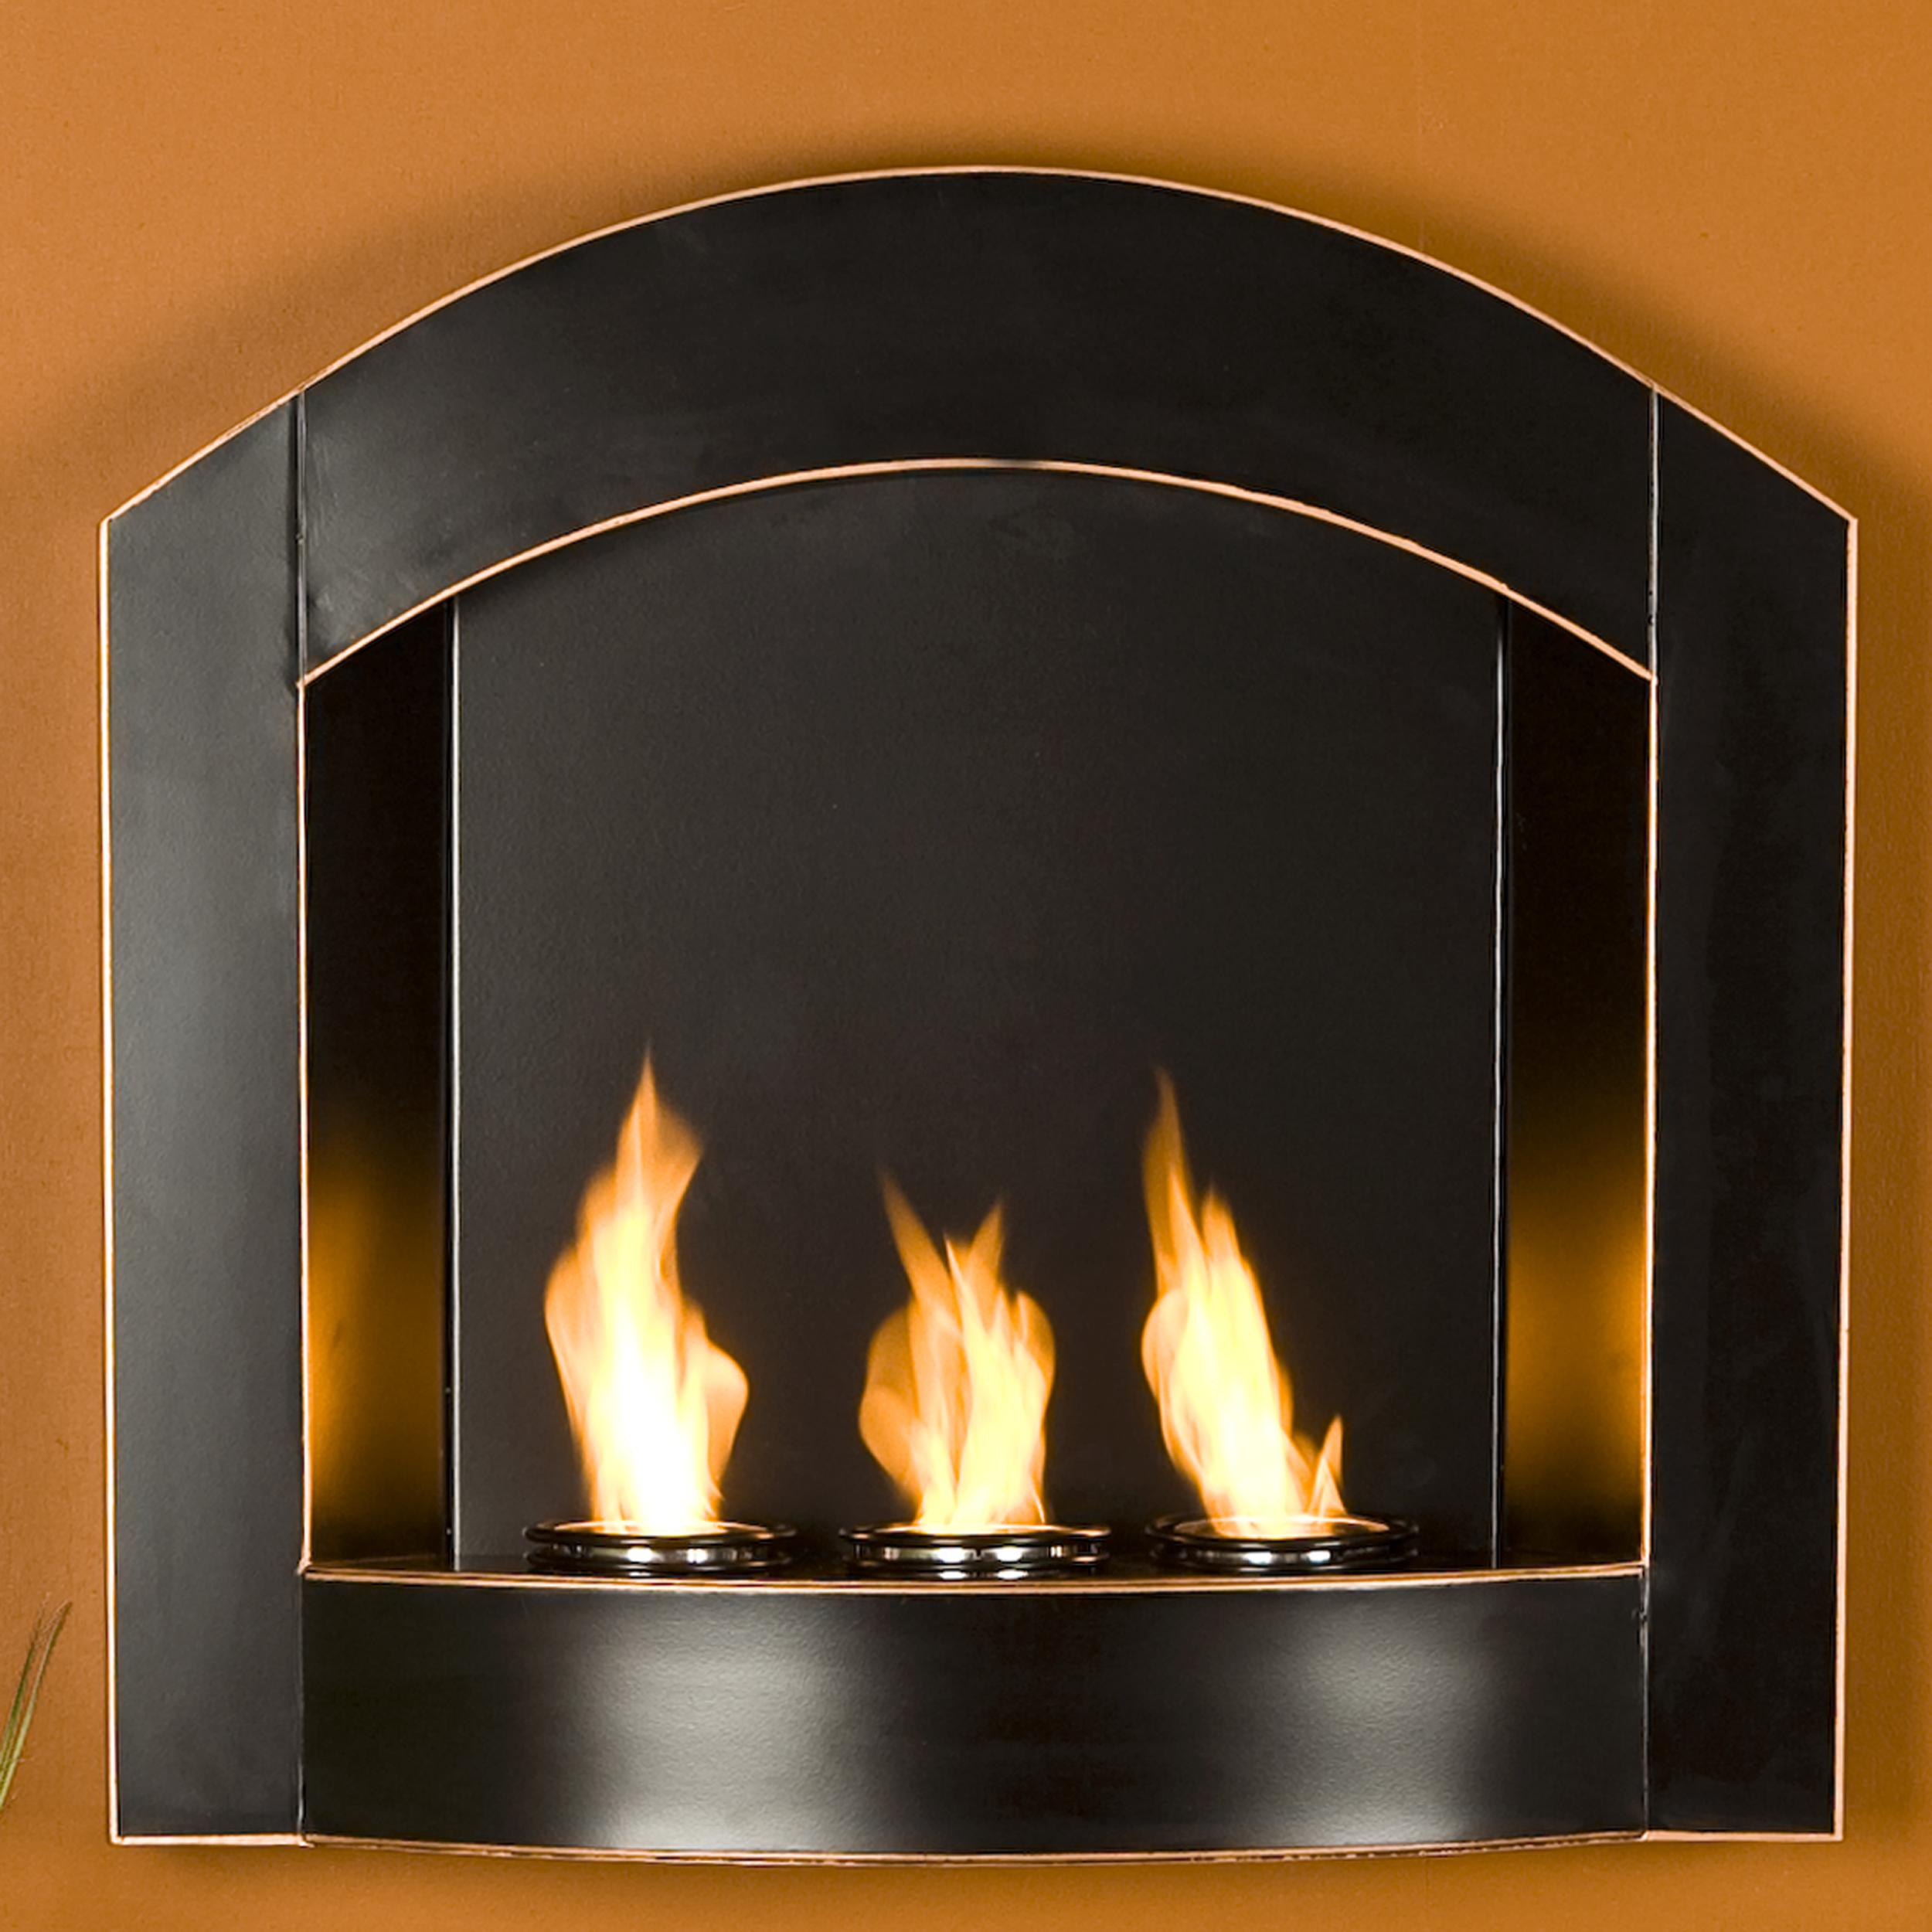 indoor diy mantel design mantels with prefab shelves for rock gas pit pizza surrounds fireplaces garden inserts wood architecture designs plans kits refacing burning oven insert stone menards download natural fire home fireplace surround outdoor lowes decorating